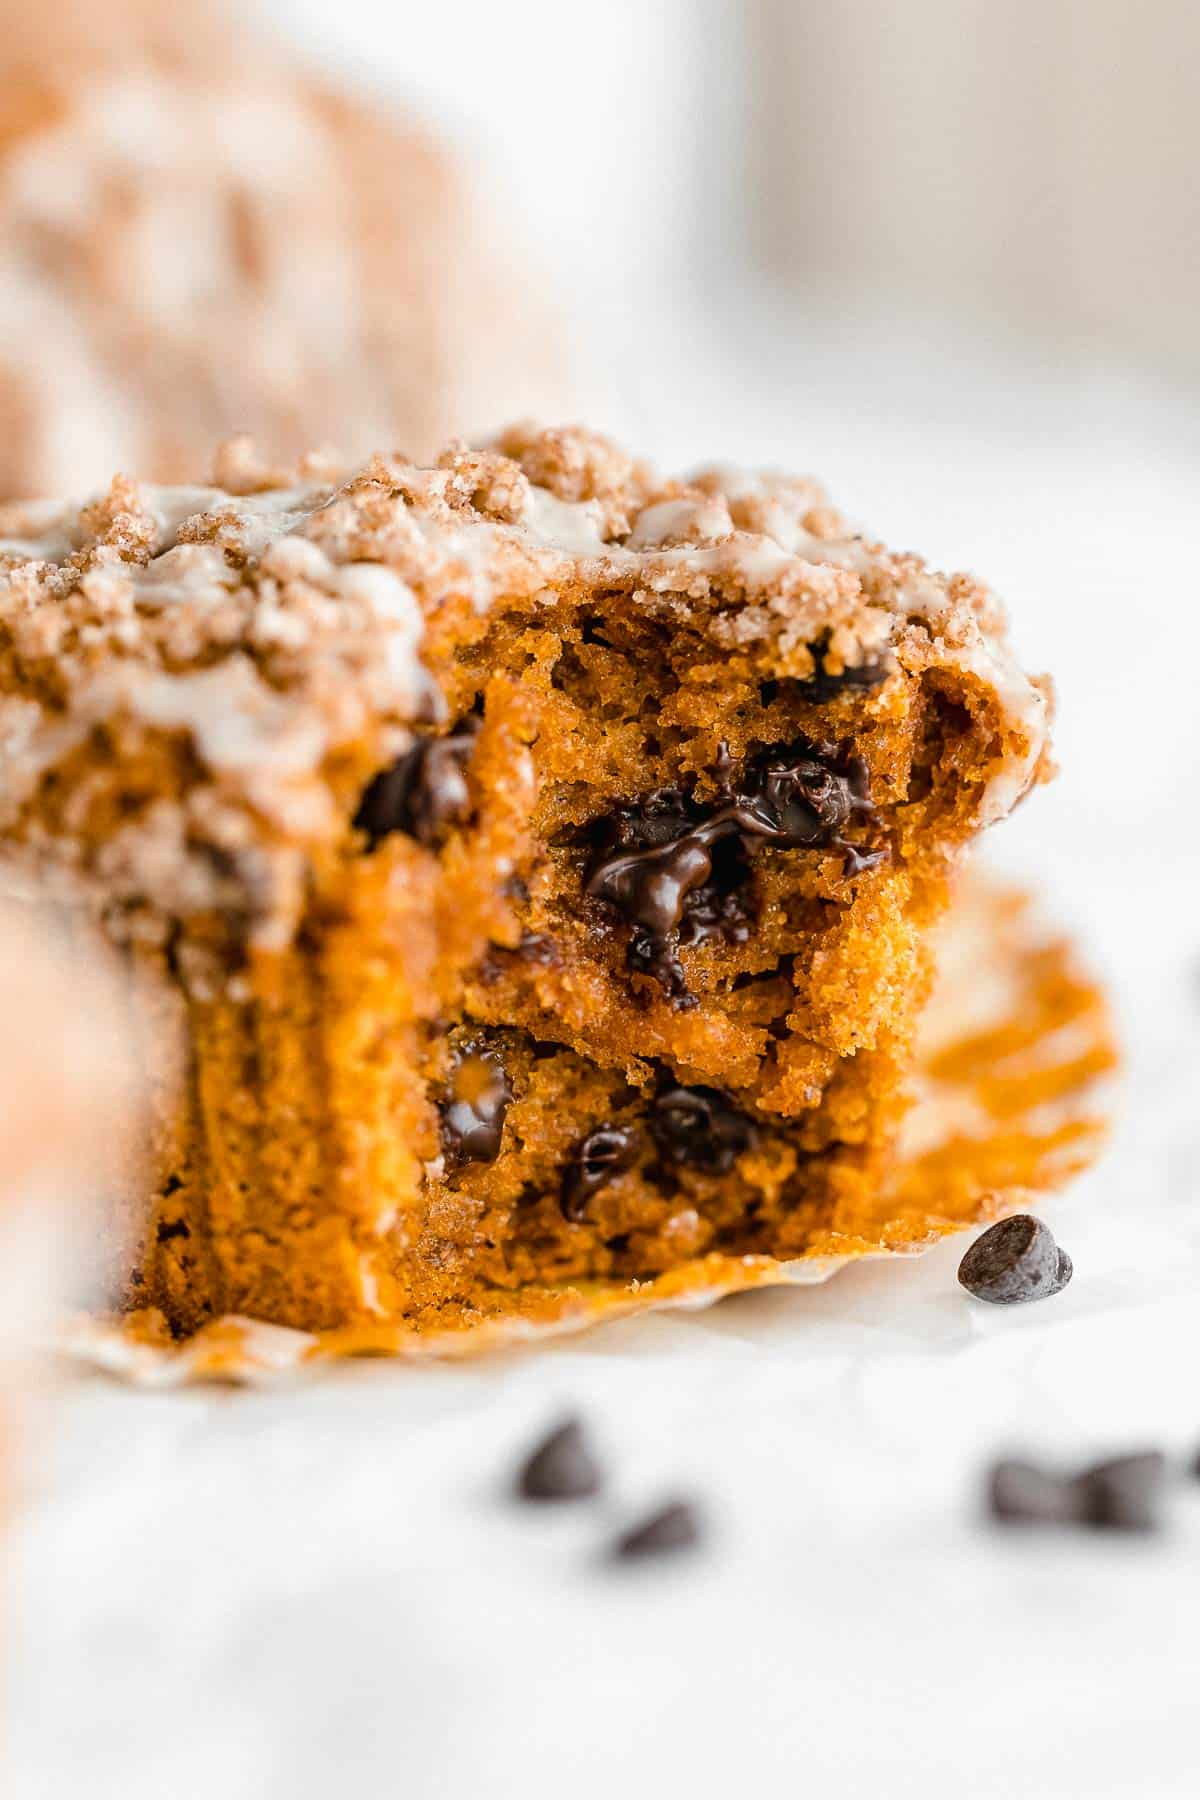 up close of one muffin with a bite taken out to show texture